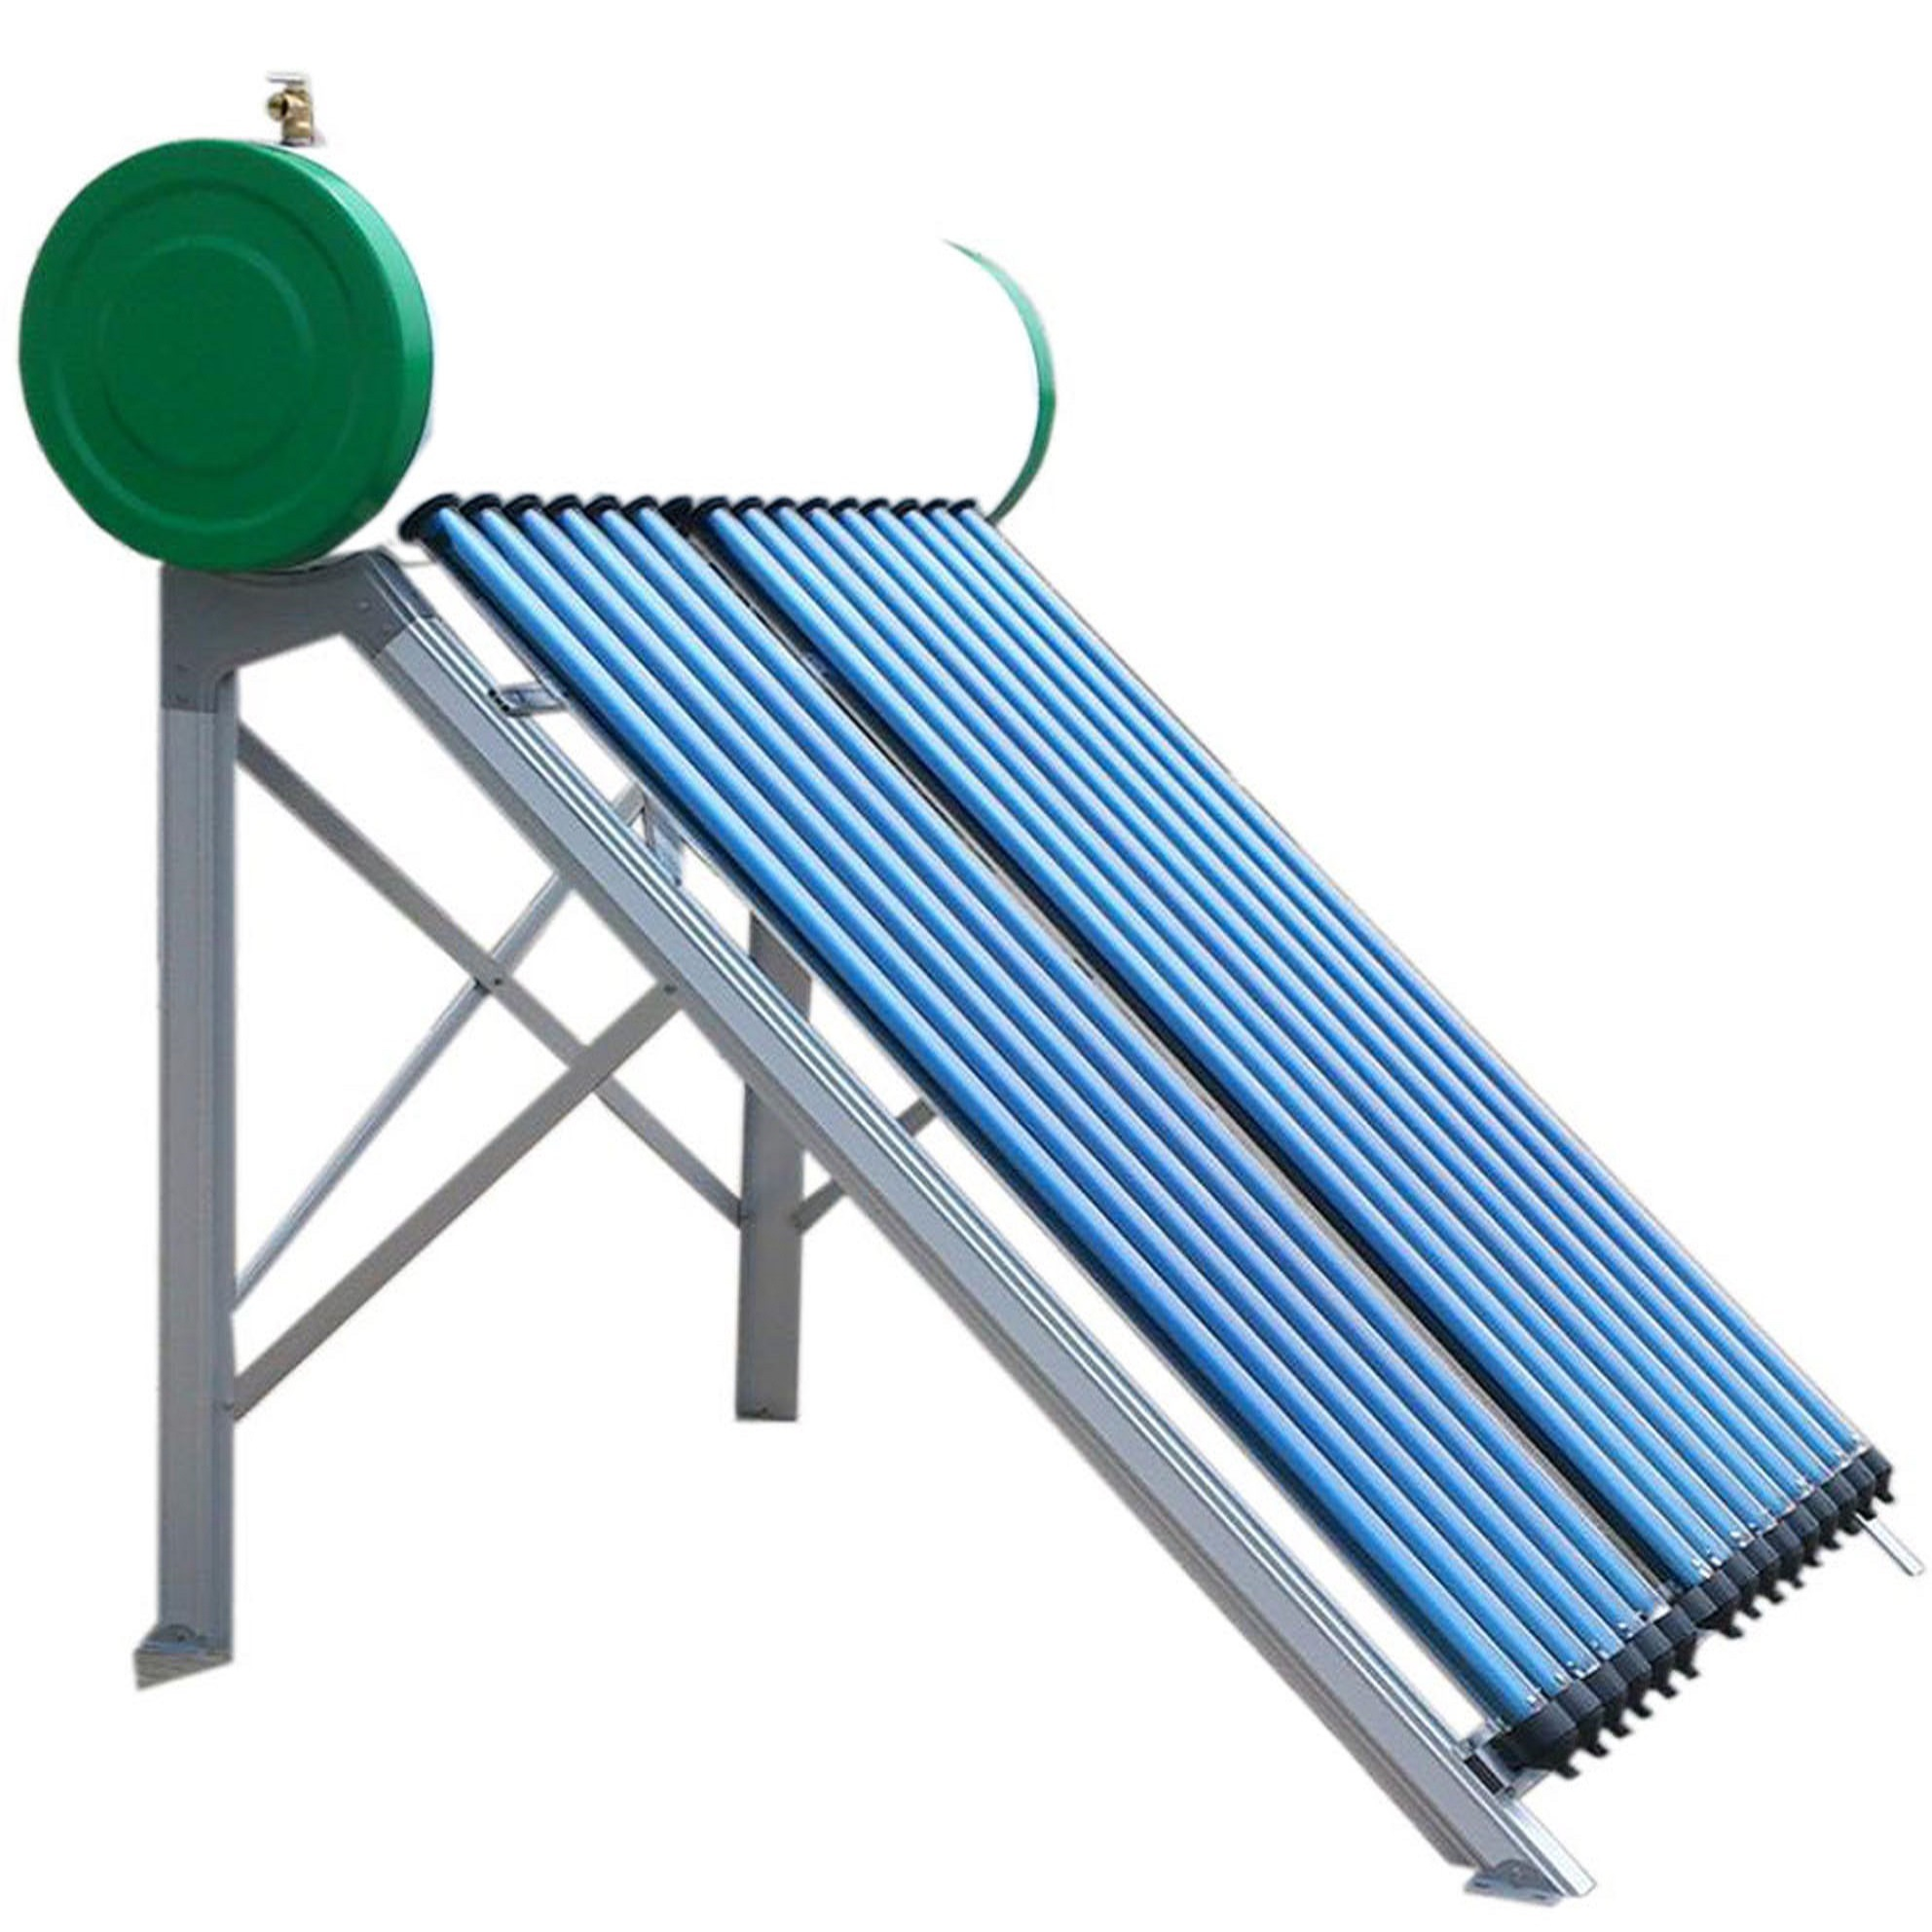 China High Pressure Solar Collector (Solar Hot Water Heating System ...